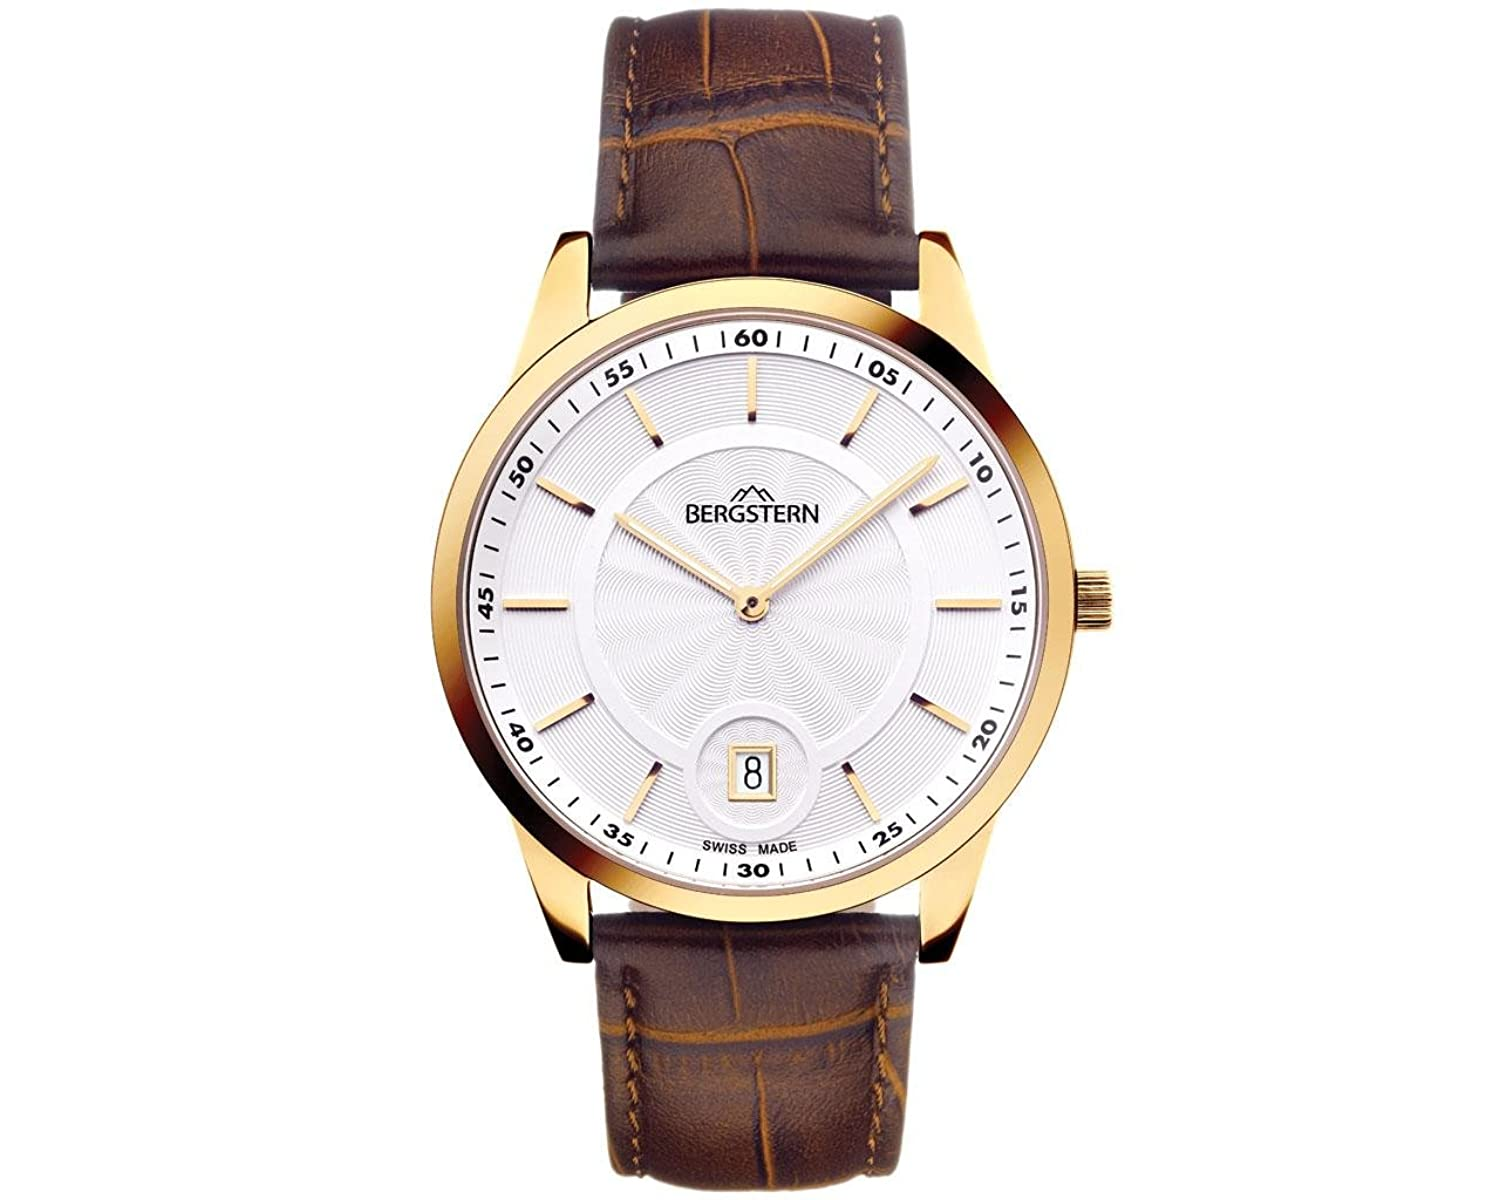 ARMBANDUHR MEN'S COLLECTION HARMONY BERGSTERN B006G031 .made SWISS whatch hoher QualitÄt MADE IN SVIZZERA.Cinturino